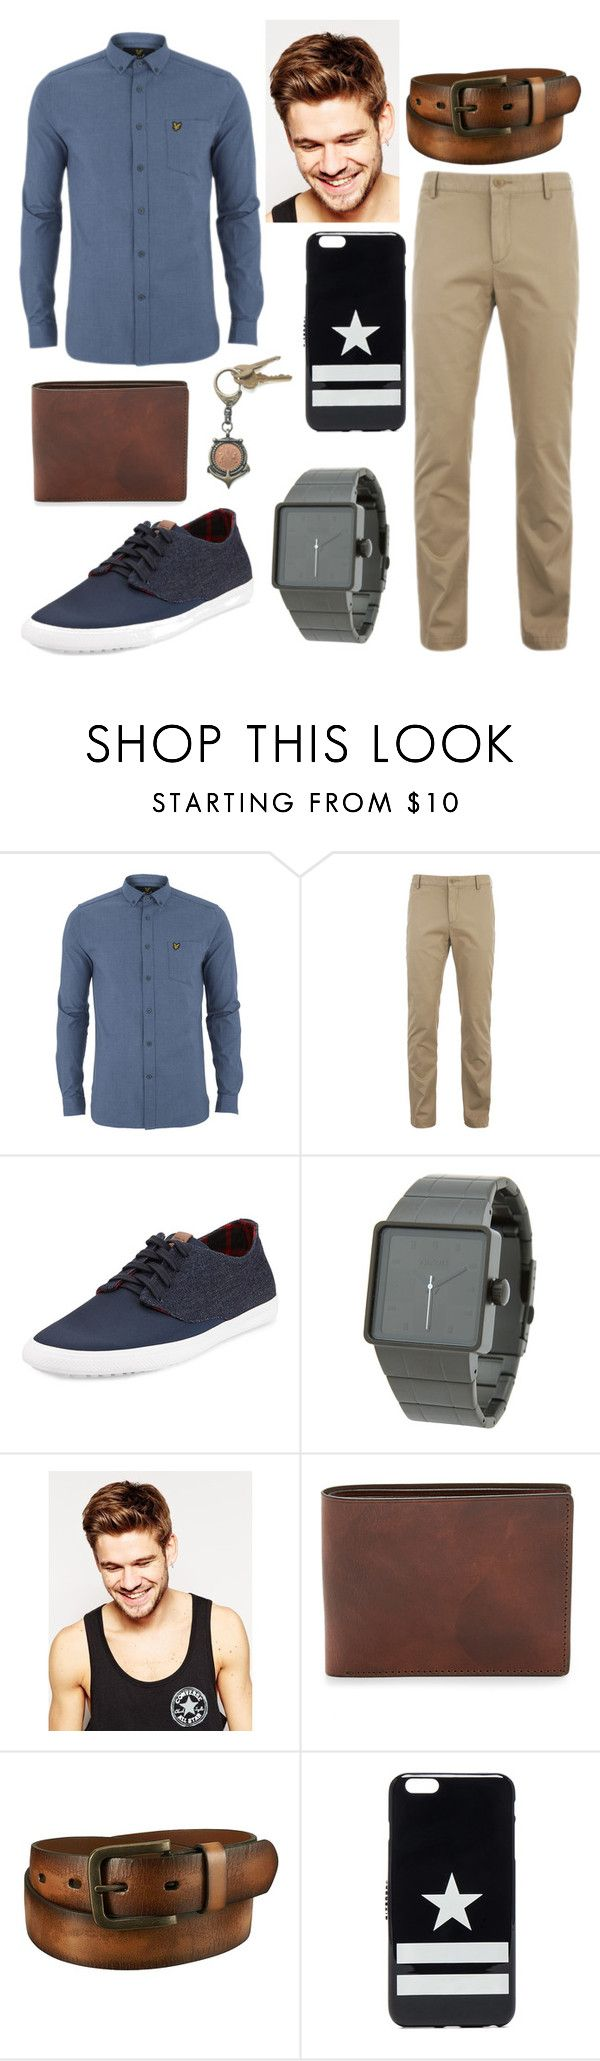 """My first men outfit"" by nikki15649 ❤ liked on Polyvore featuring Lyle & Scott, Lacoste, Ben Sherman, Nixon, Toni & Guy, Uniqlo, Givenchy, American Coin Treasures, mens and men"